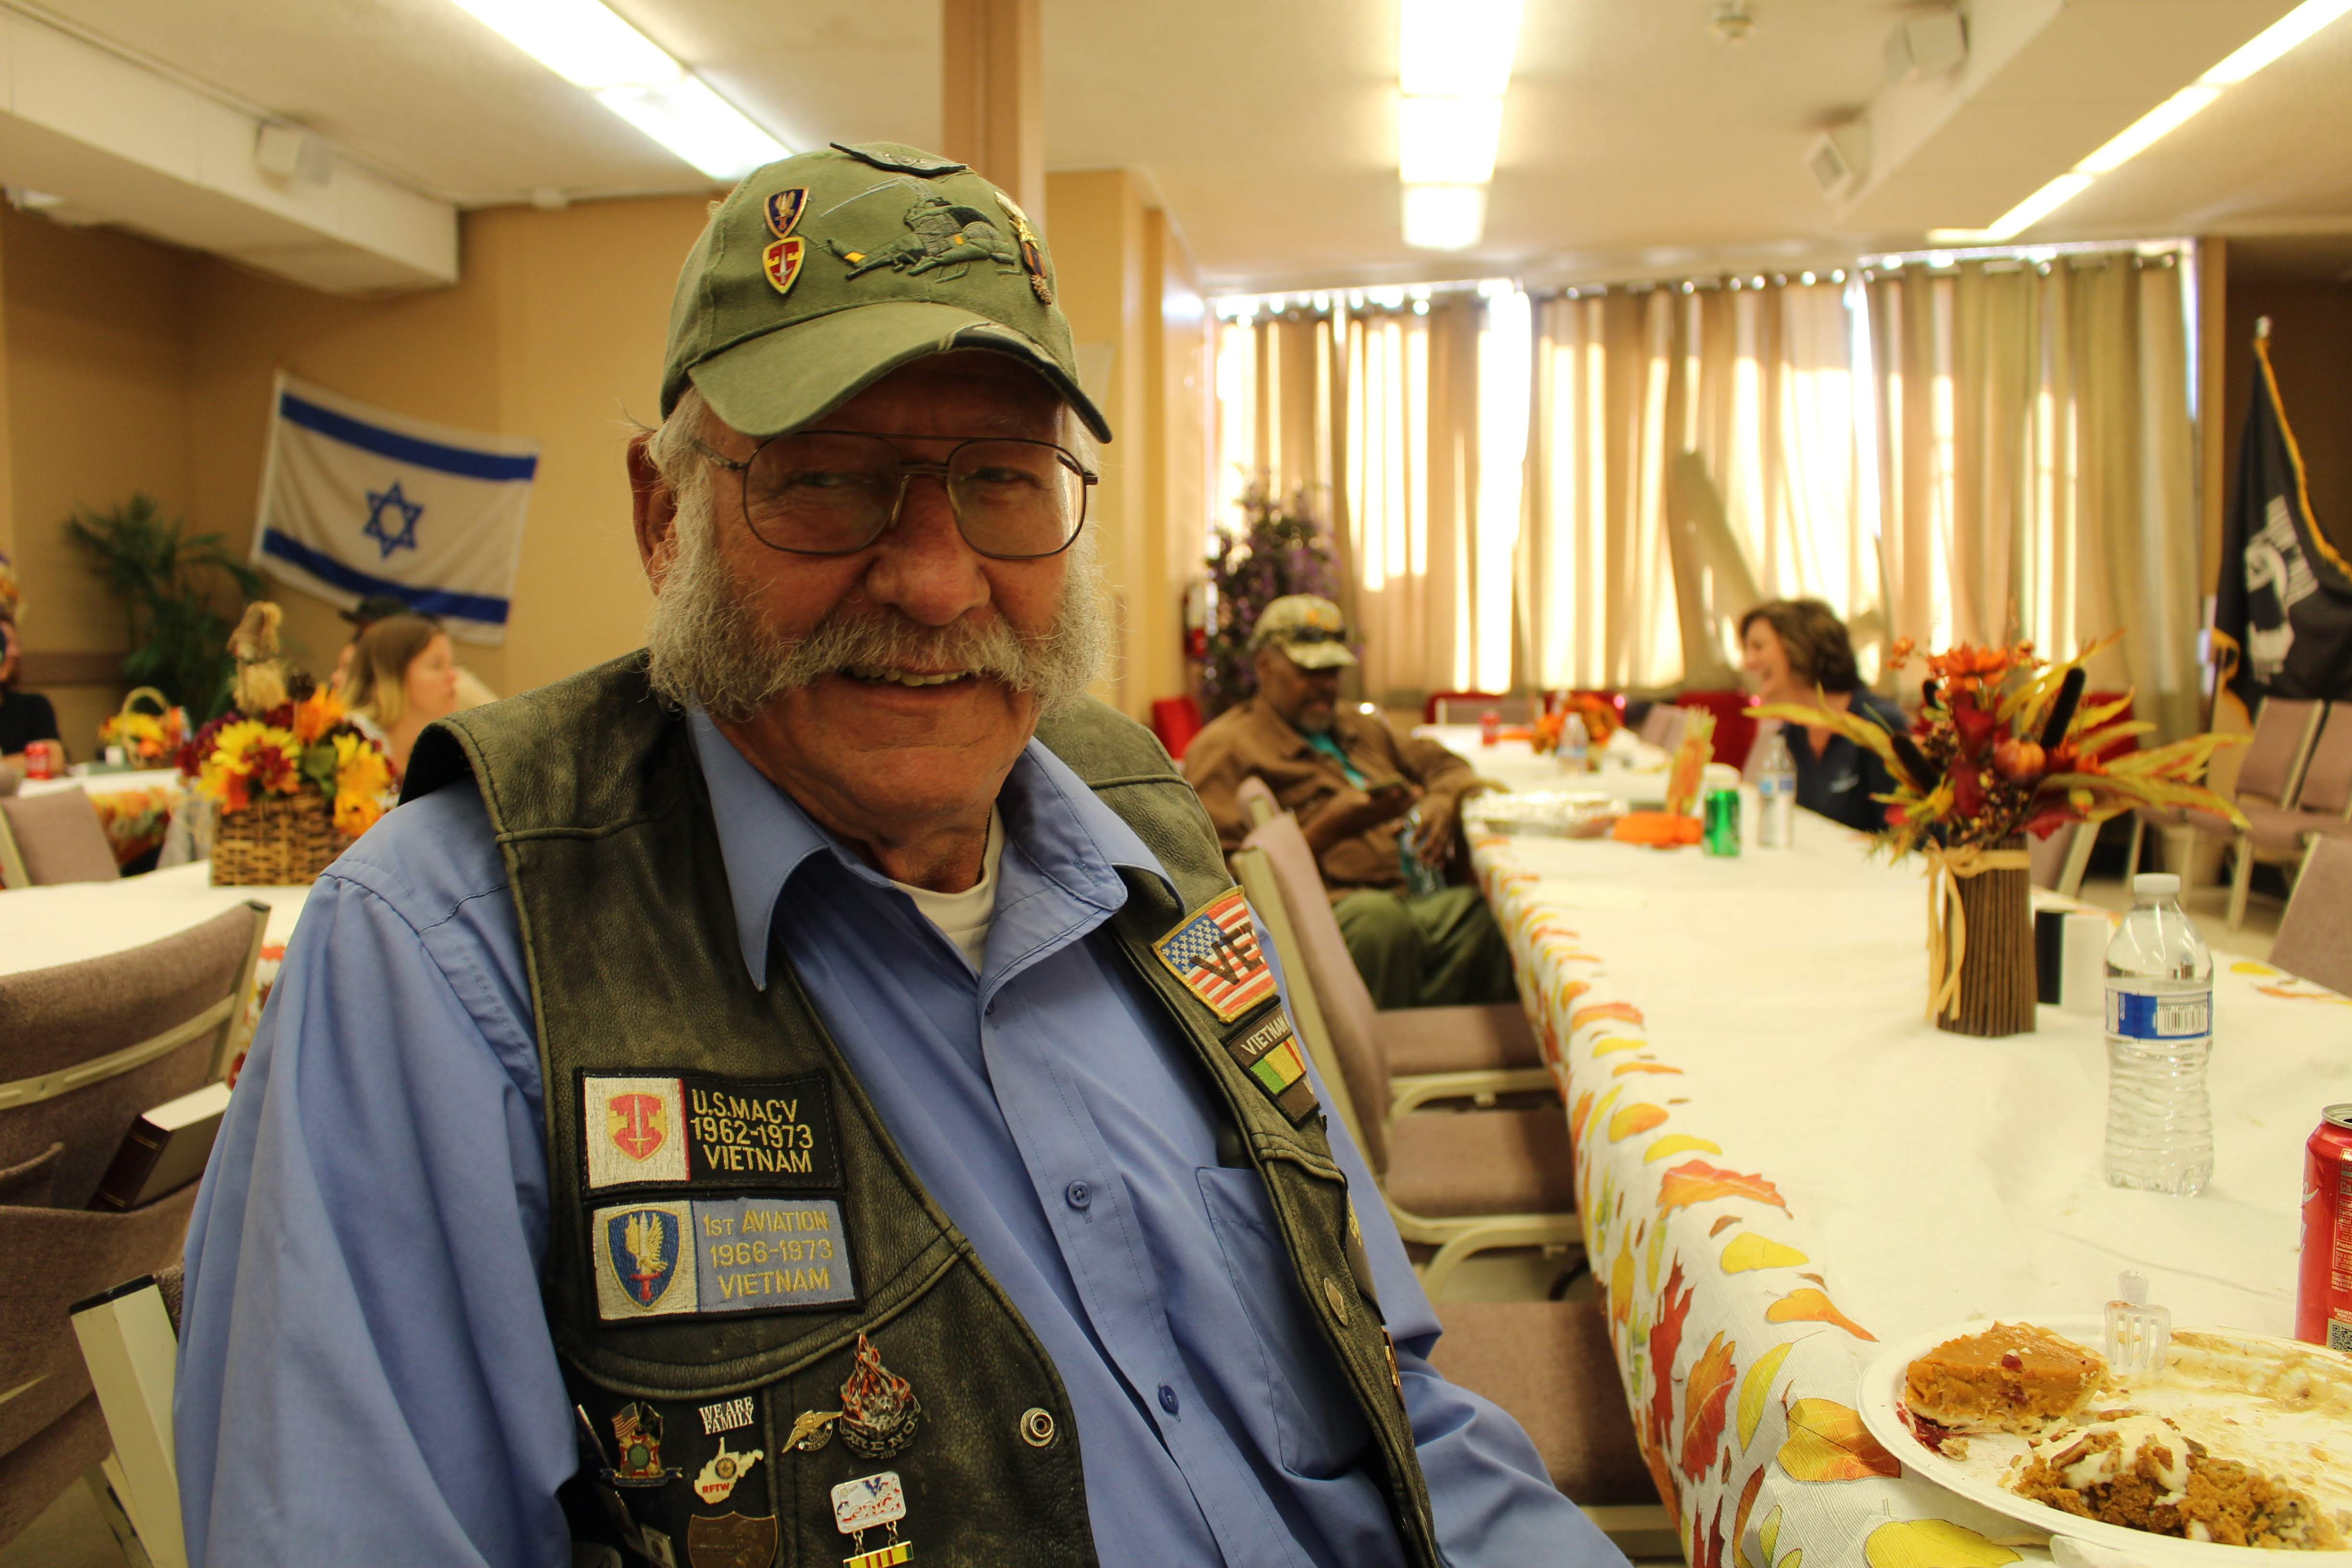 Ed Leffler wearing veteran patches